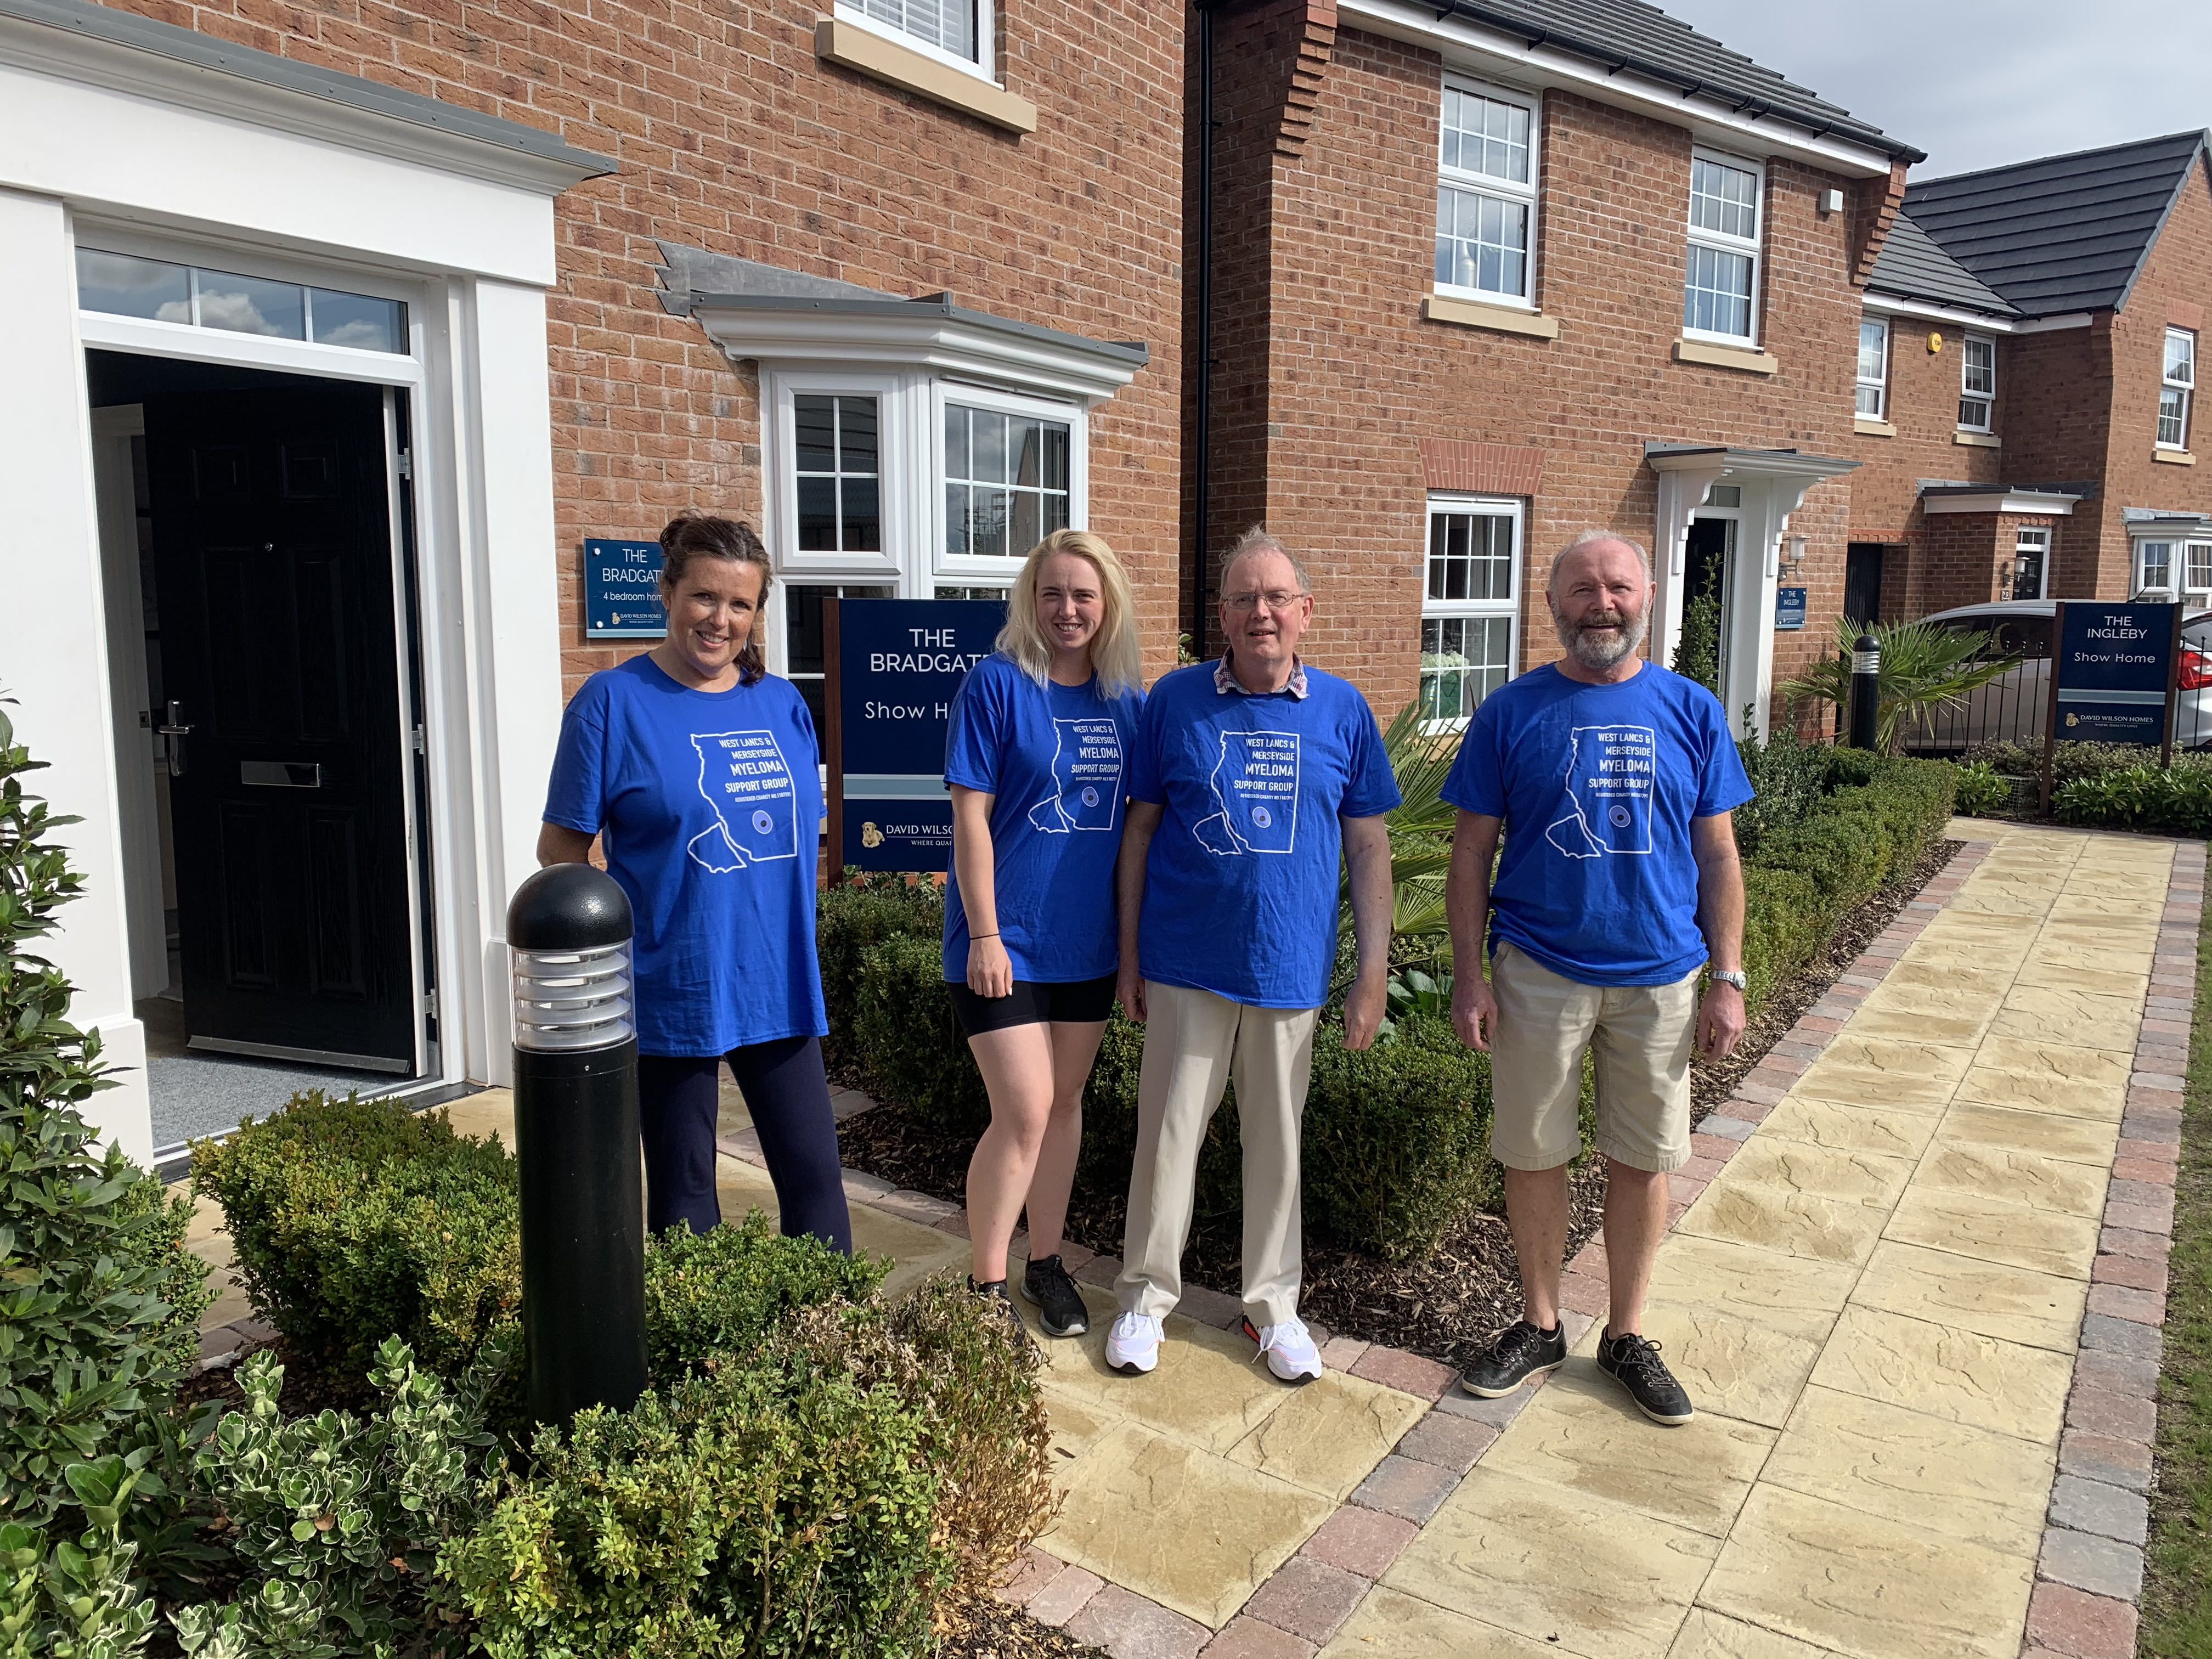 Myeloma Support Group receives donation of £1,000 from David Wilson homes